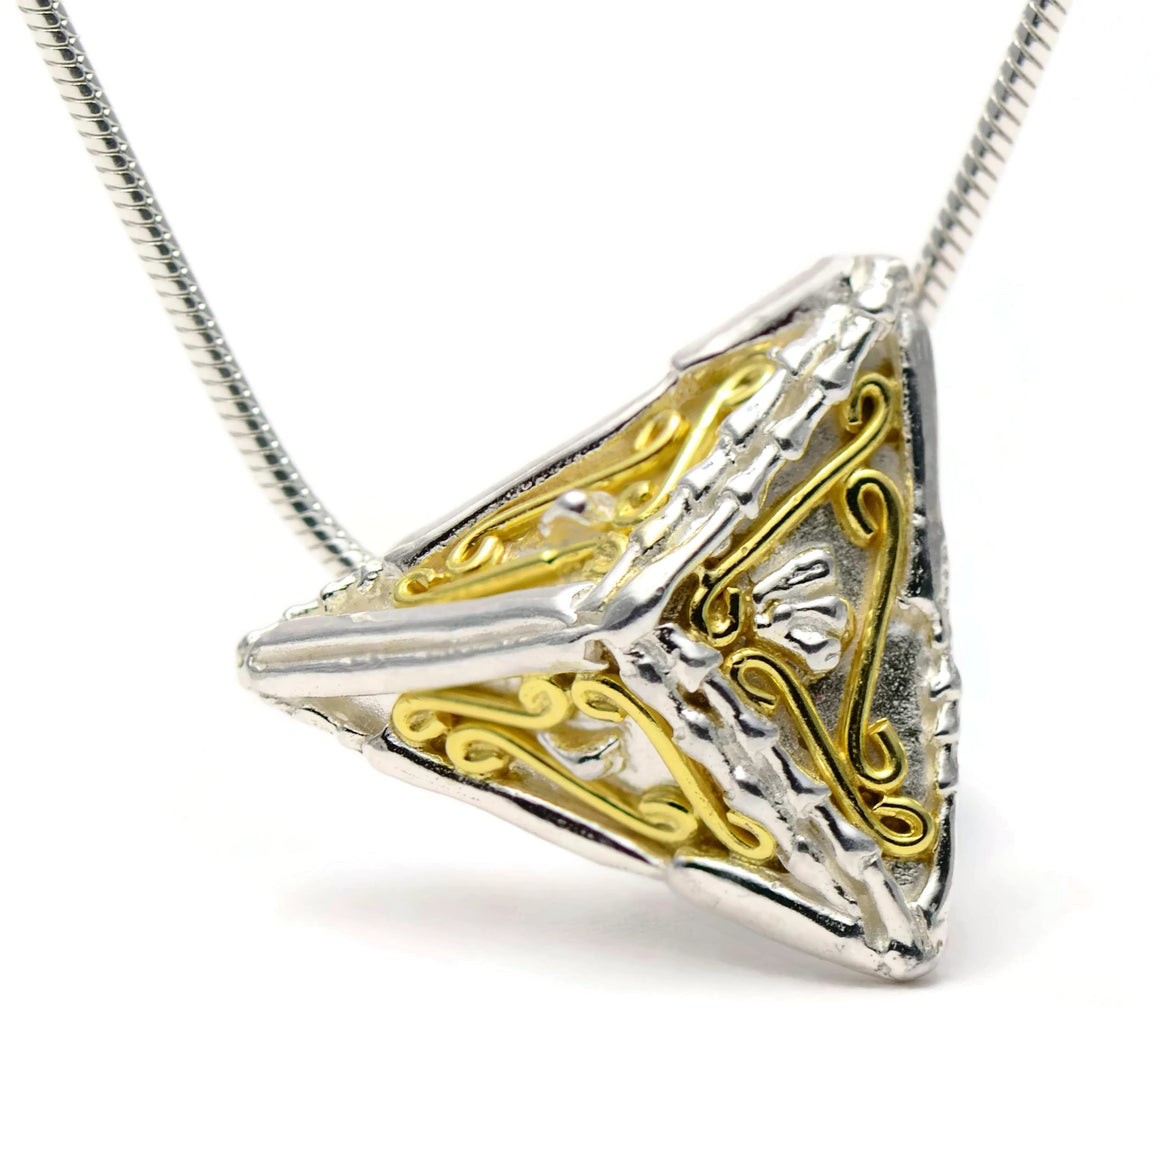 18ct gold and silver small 3D triangle pendant design, geometric jewellery